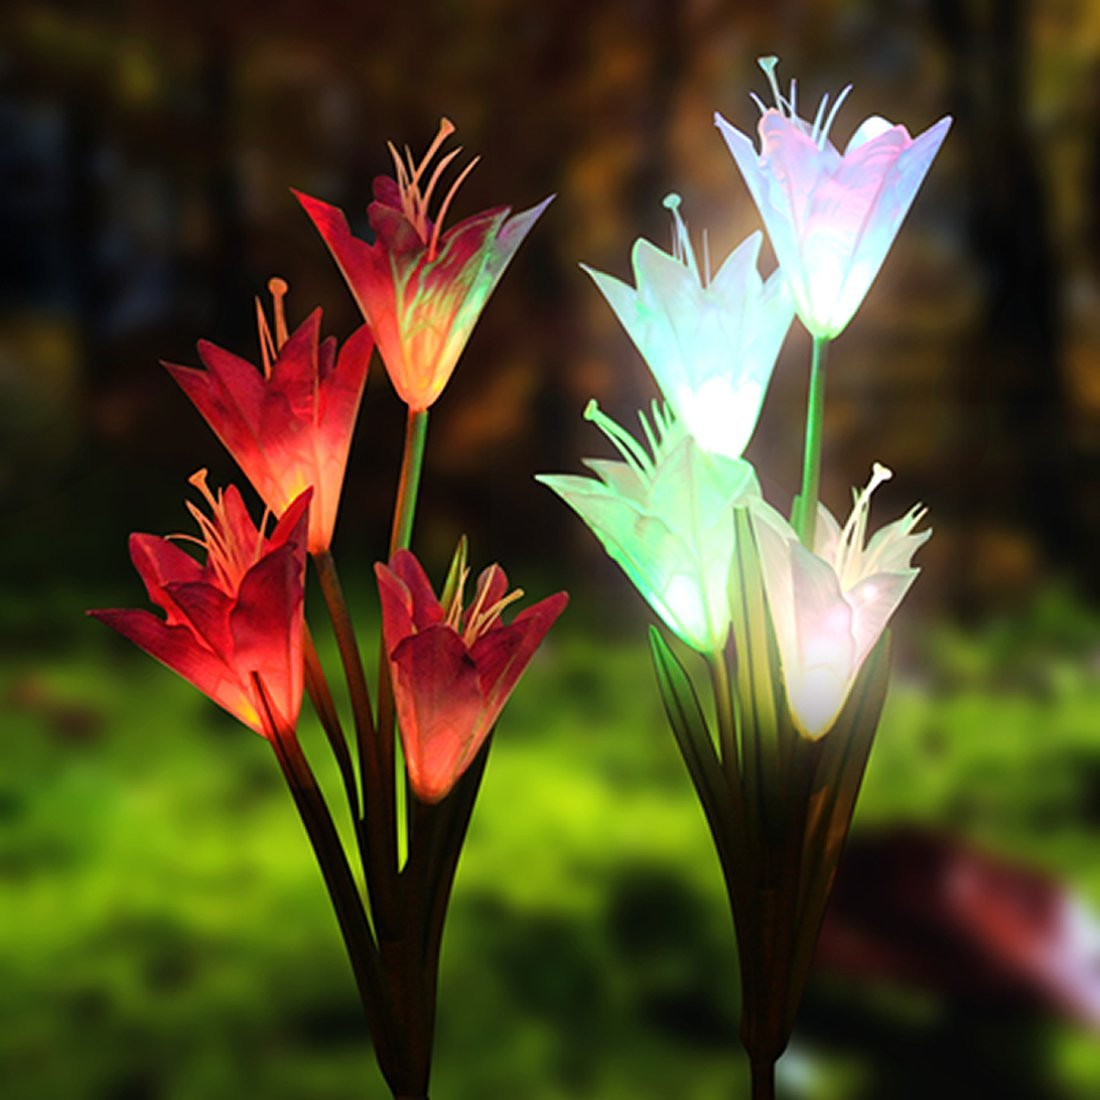 Solar Garden Stake Lights-Solar Lights Outdoor Decorative, 2 Pack Multi-color Changing Solar Powered Led Lights with 8 Lily Flower for Garden, Patio, Yard, Backyard Decorations(Purple and White)